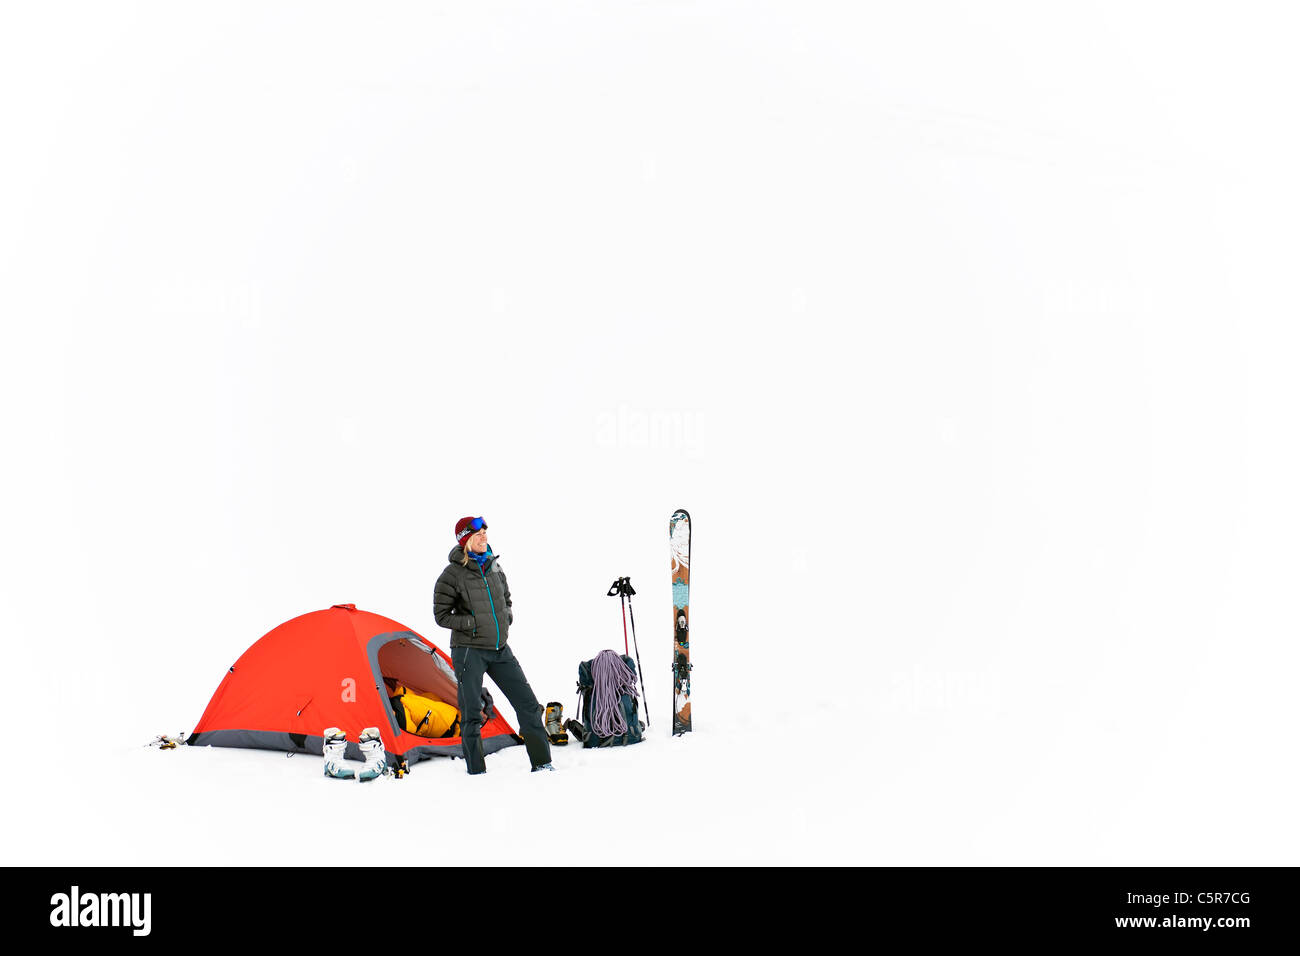 A smiling happy mountaineer with all her equipment at base camp. - Stock Image